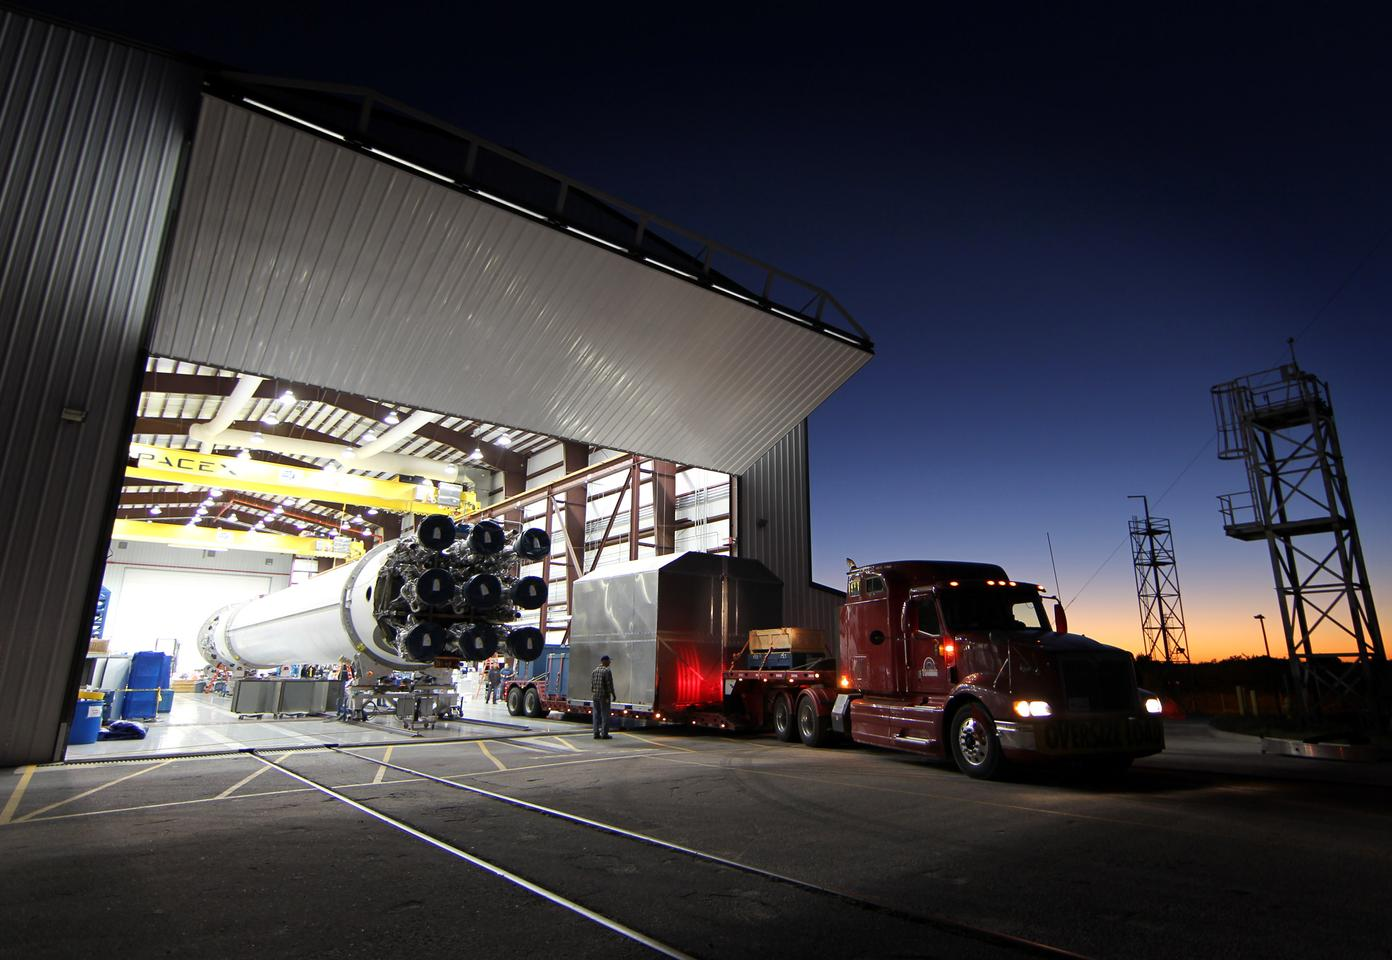 CRS-2 roll out